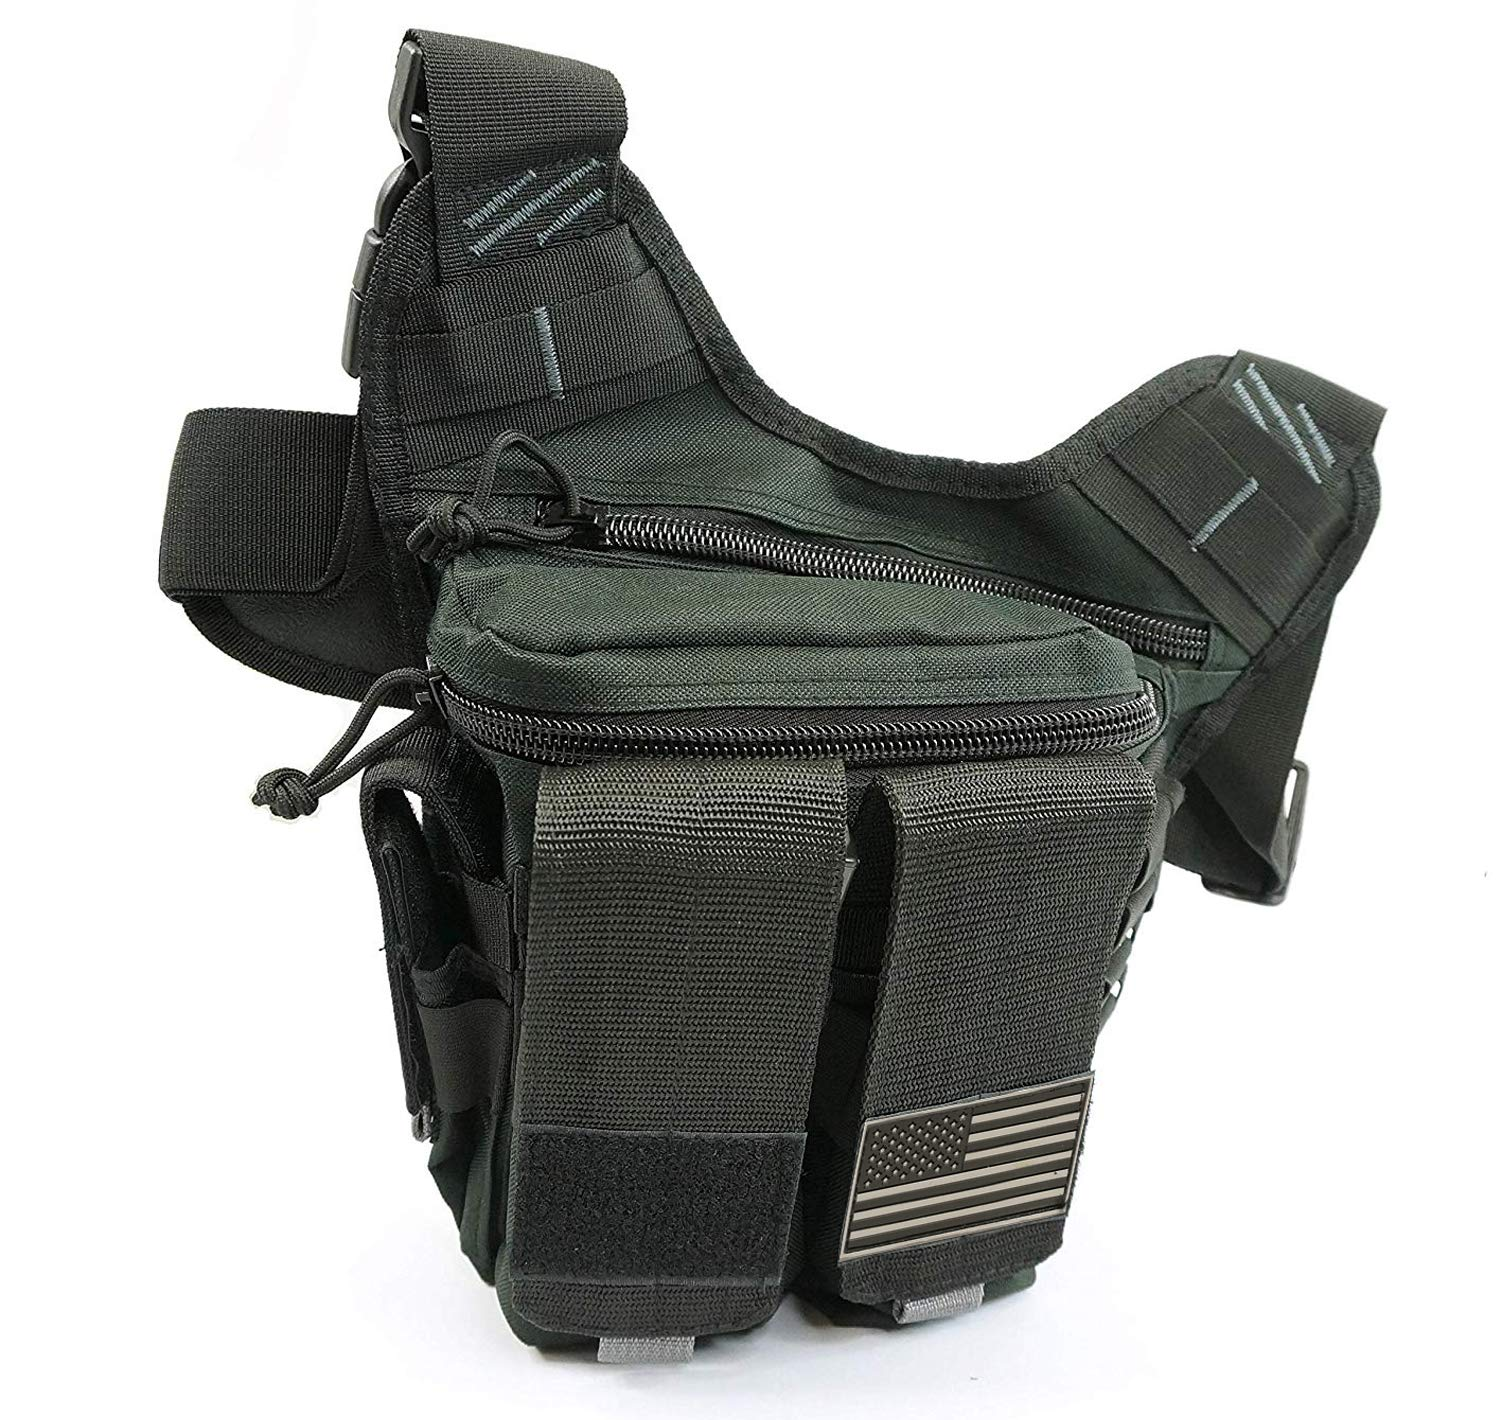 NiceAndGreat Tactical Bag Rapid Outdoor Range Sling Pack for Handguns and Pistols Quality Chest Pack Holster Included (Black) by NiceAndGreat